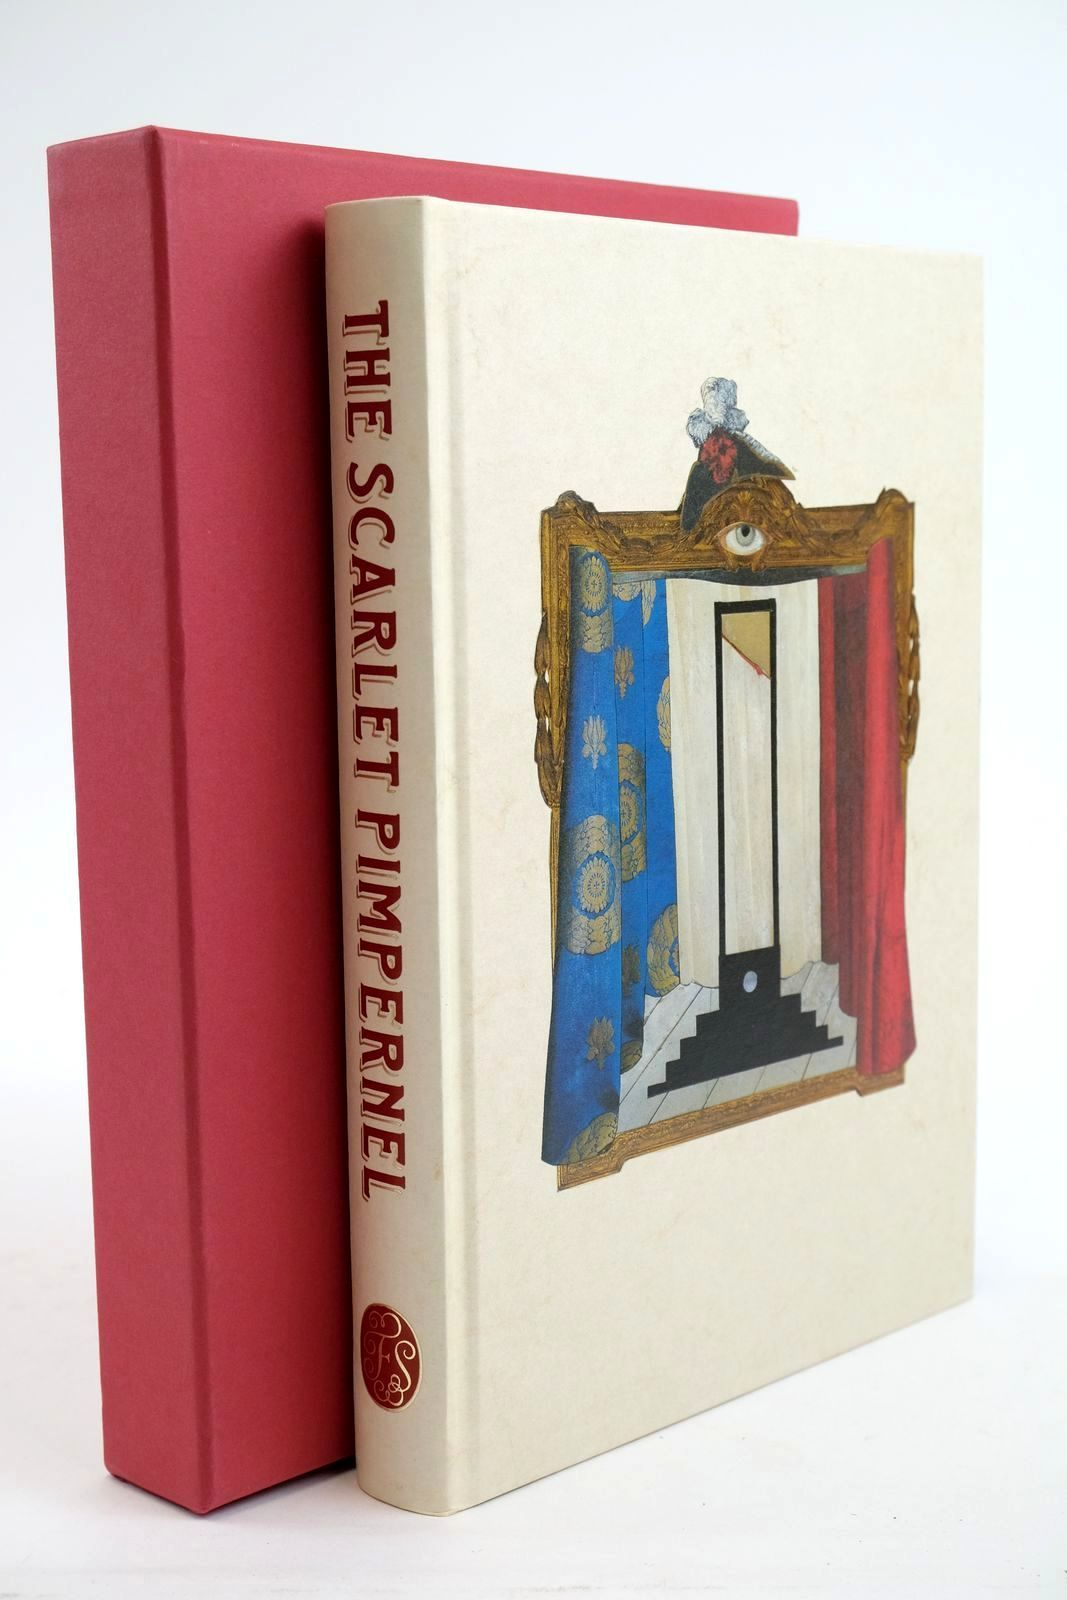 Photo of THE SCARLET PIMPERNEL written by Orczy, Baroness Mantel, Hilary illustrated by Weller, Lucy published by Folio Society (STOCK CODE: 1321552)  for sale by Stella & Rose's Books